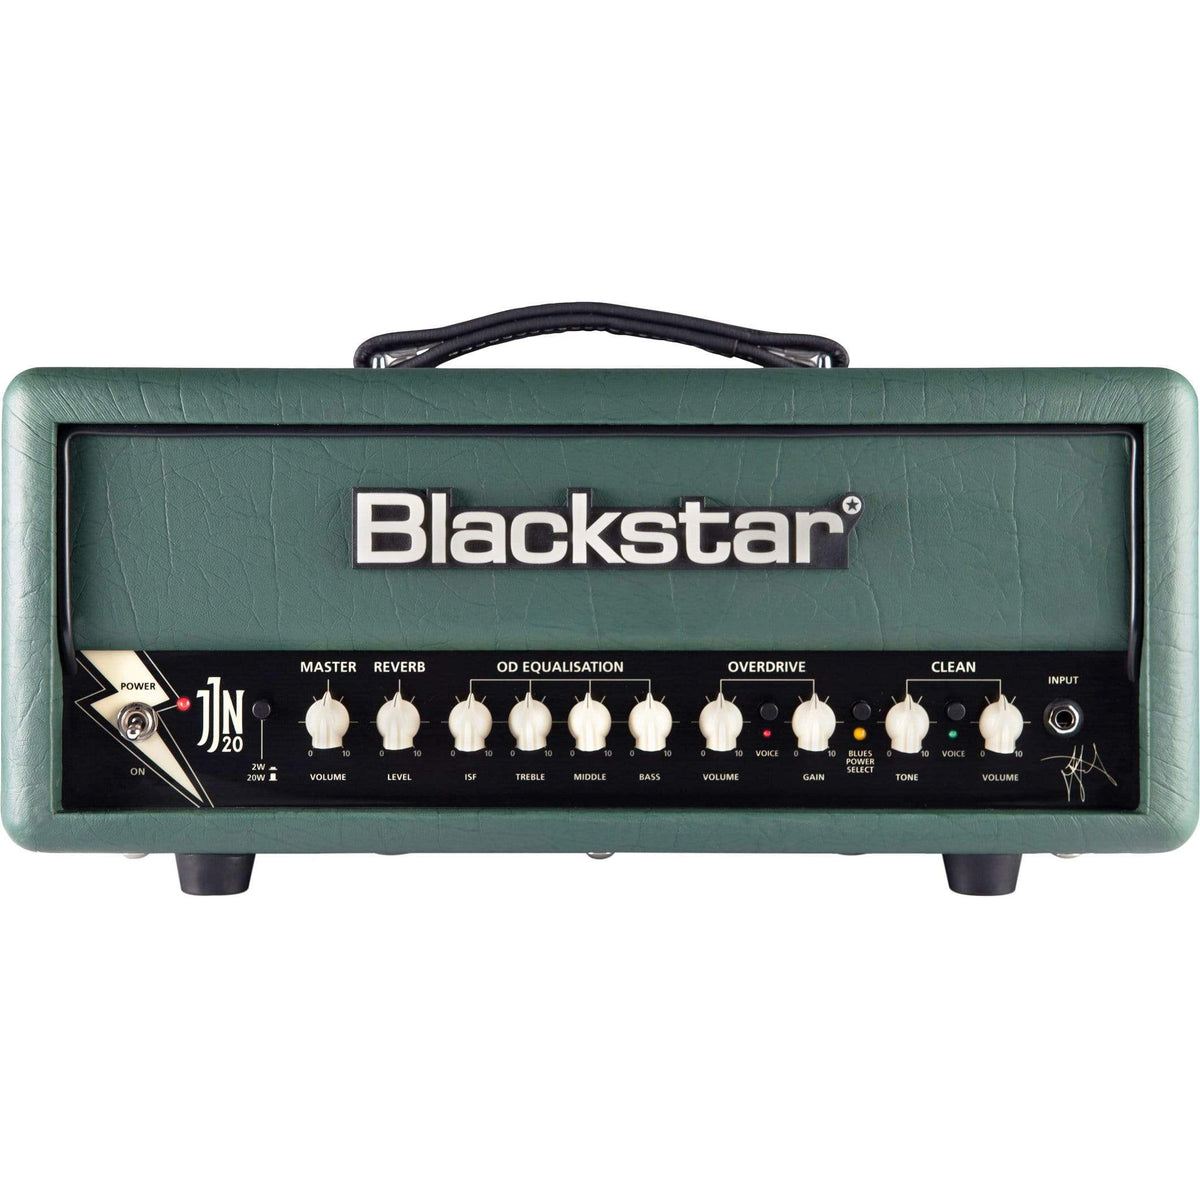 Blackstar JJN-20RH MKII Jared James Nichols Valve Amplifier Head - Racing Green